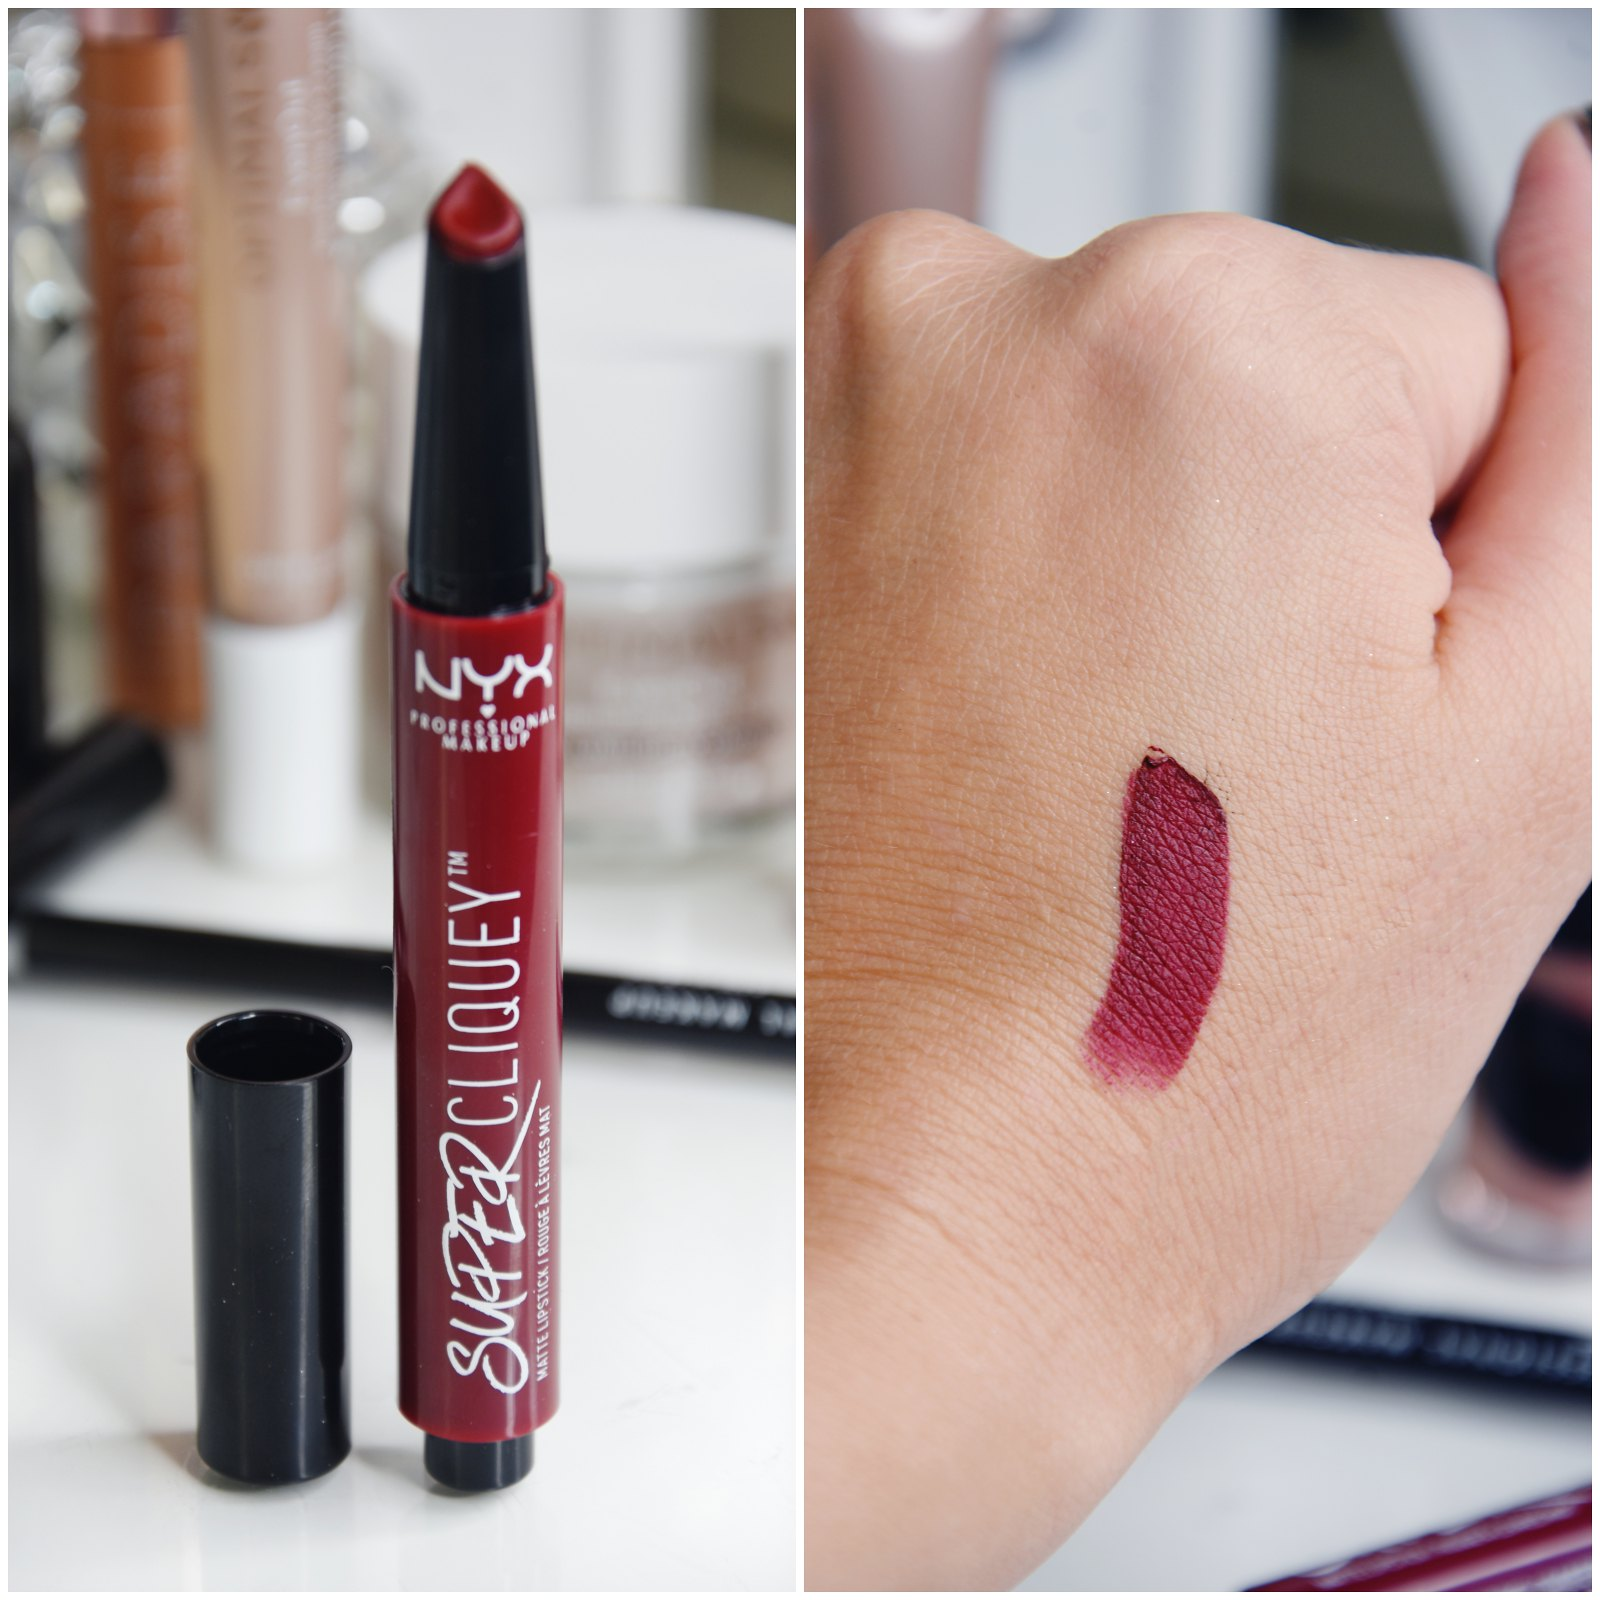 NYX Super Cliquey lipstick review